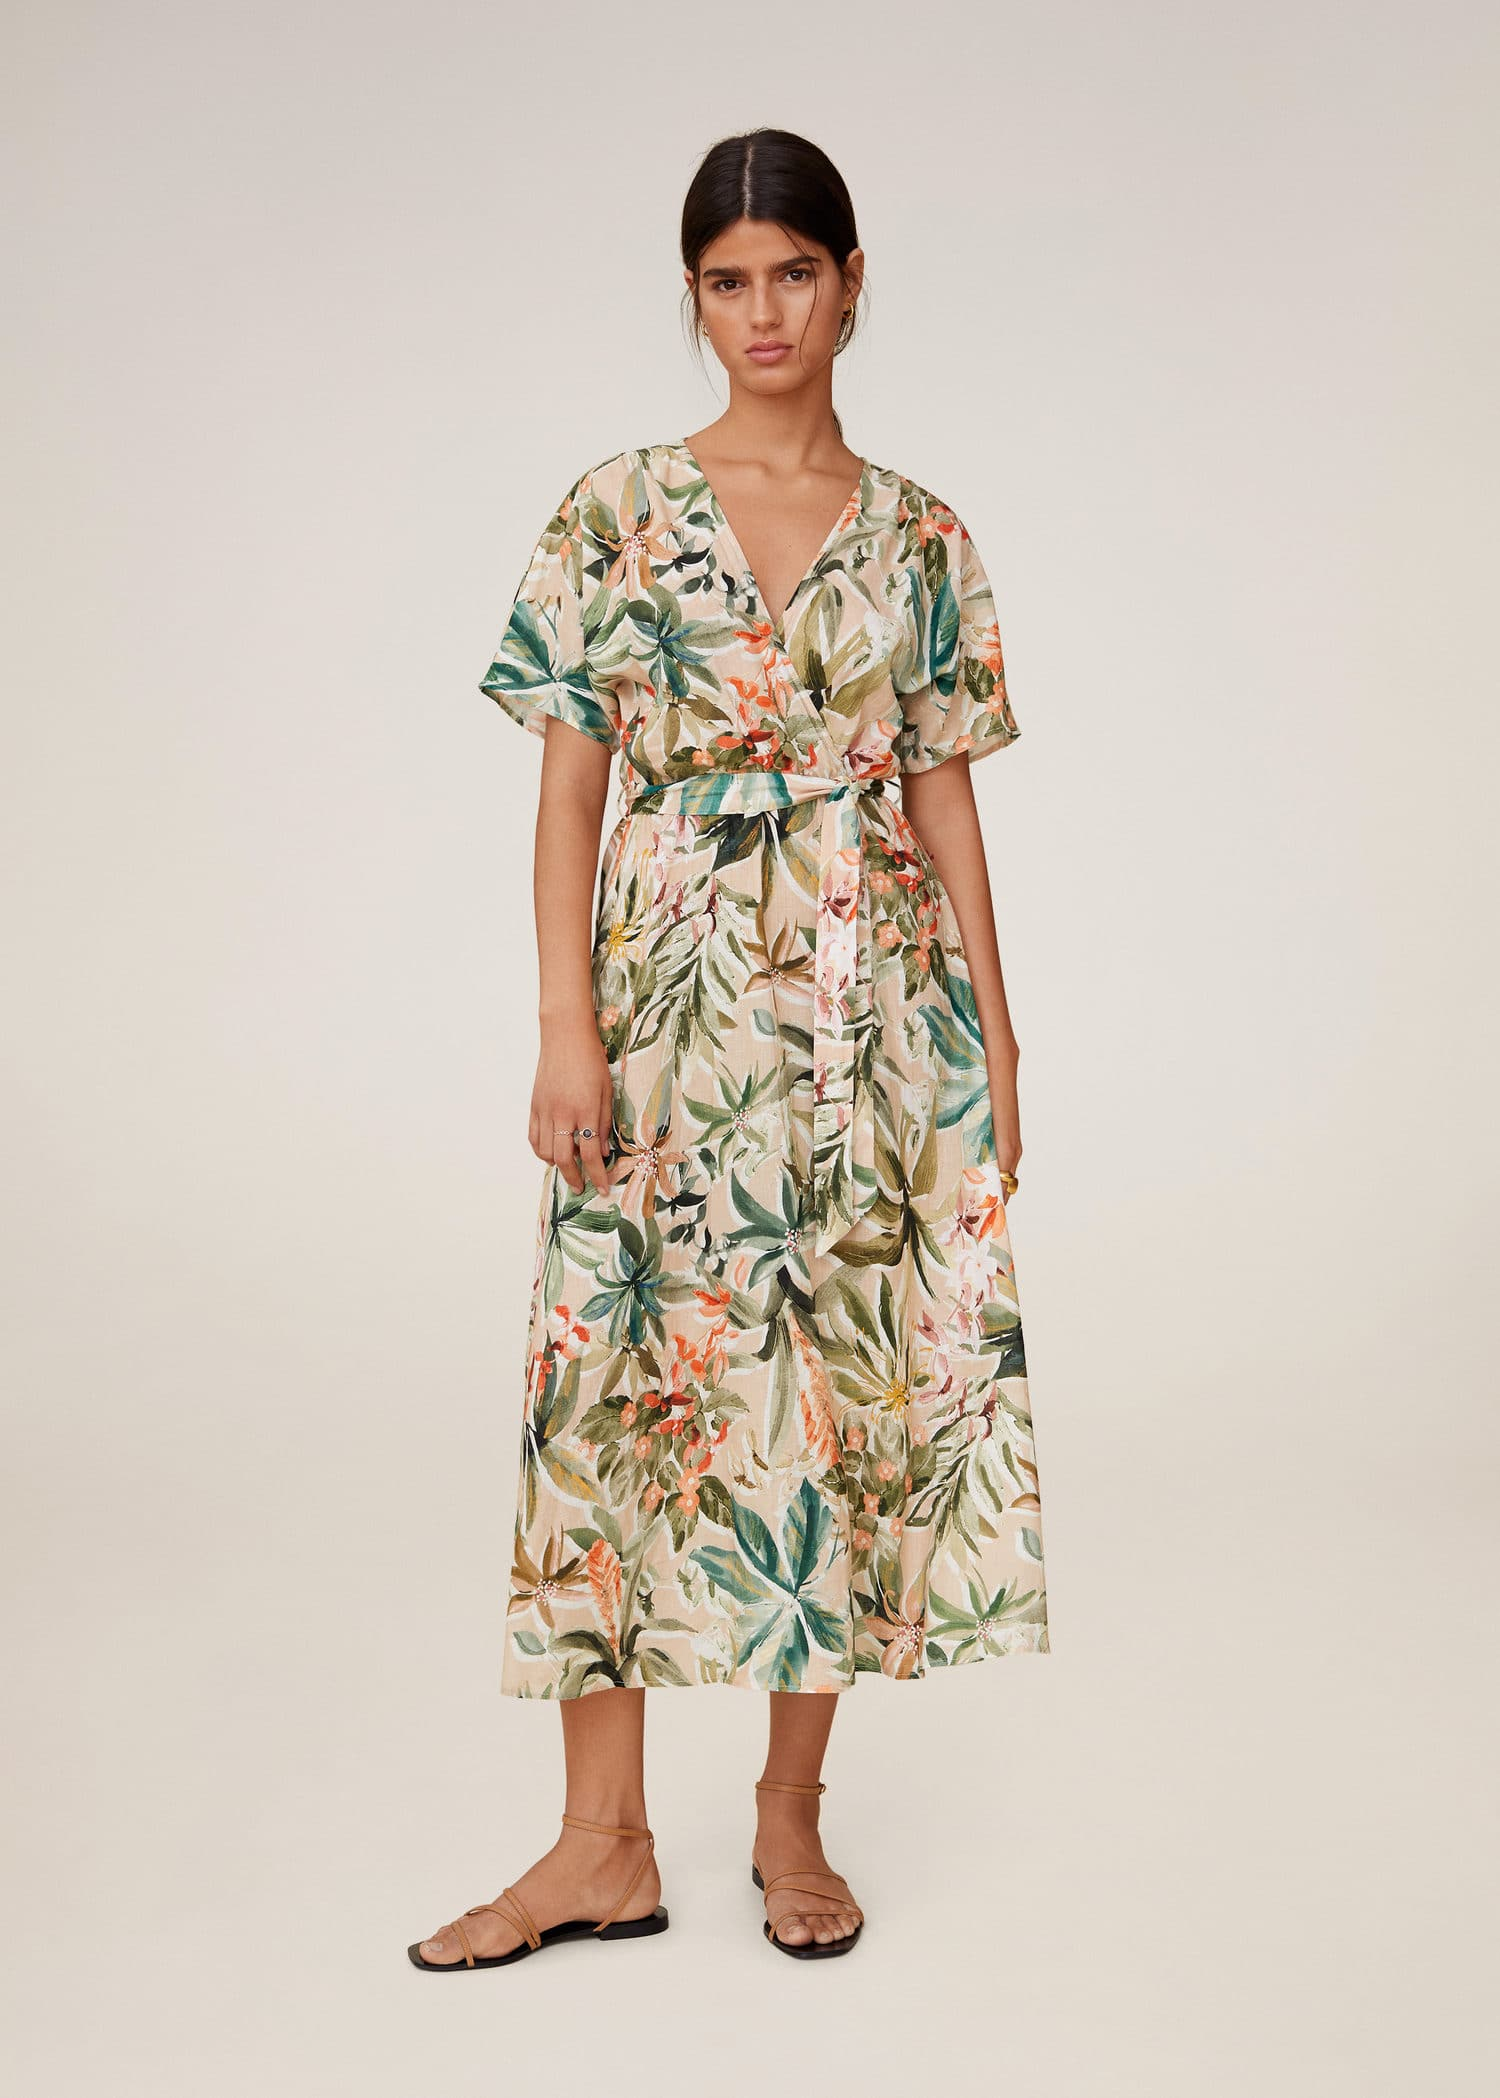 Women/'s Floral Long Sleeve Midi Dress Ladies Striped Belted Casual Shirt Dress